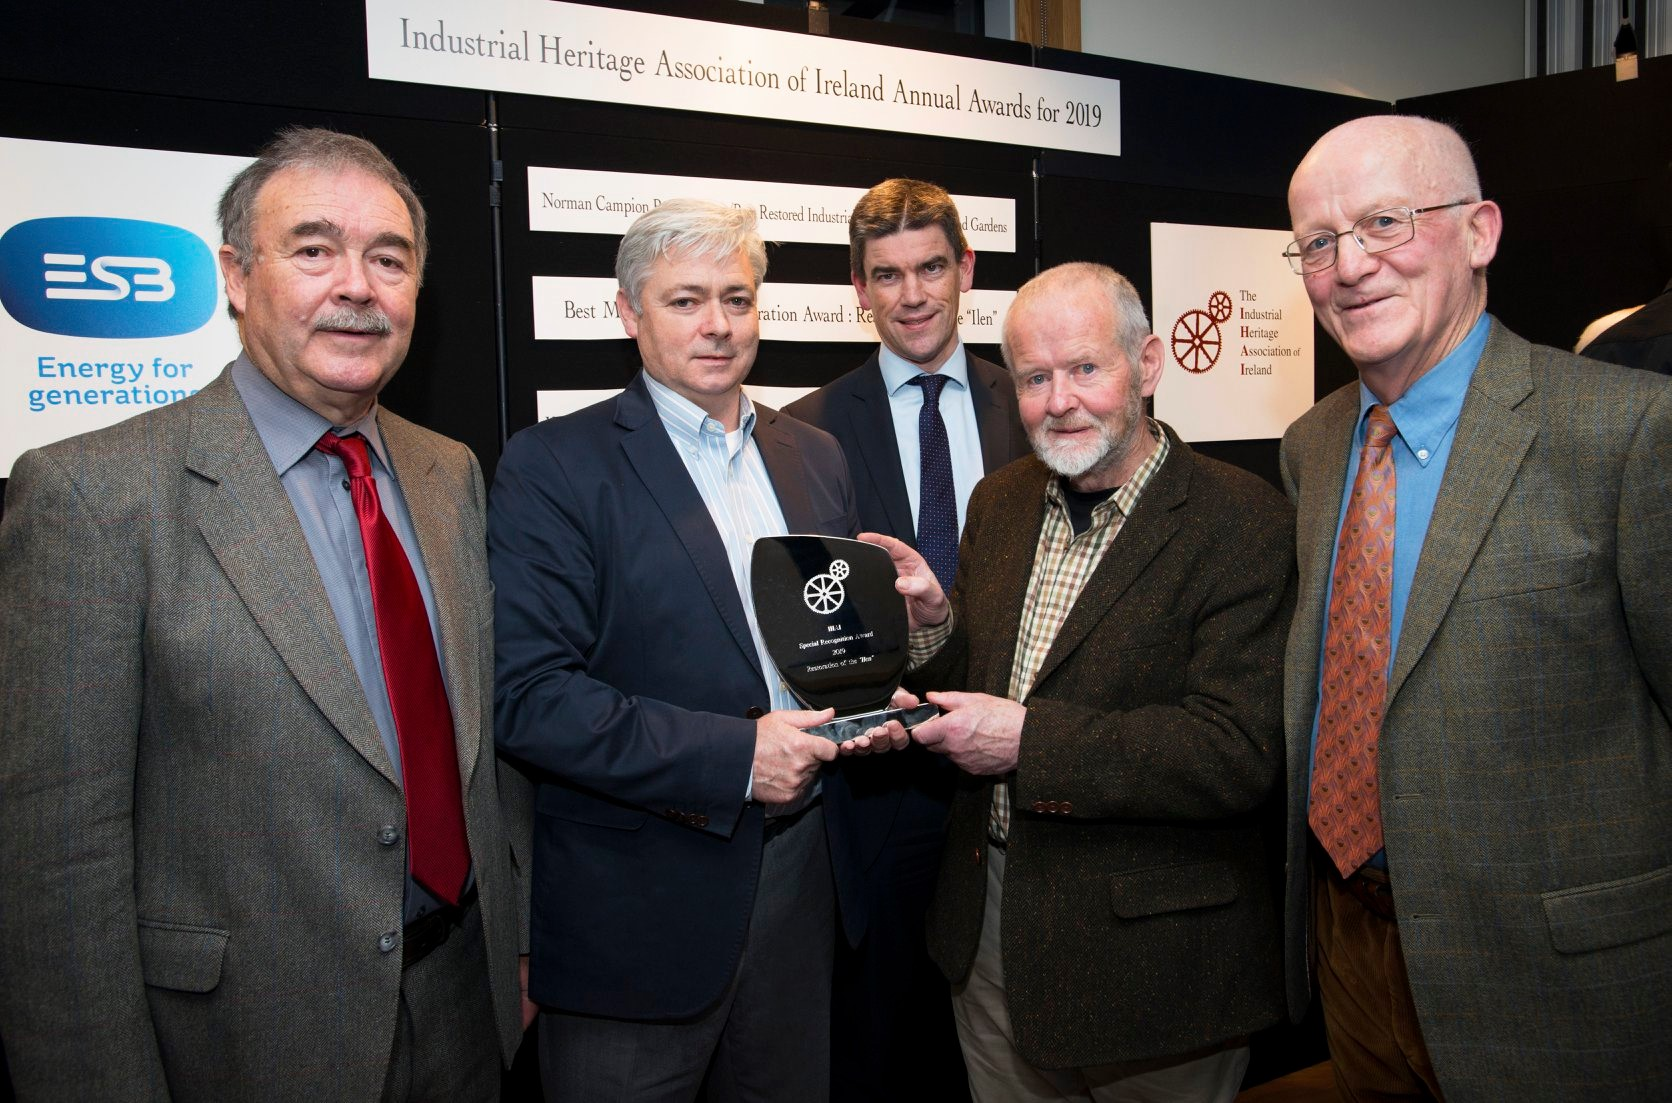 (L to R) IHAI President Paul McMahon, Gary Mac Mahon and Br Anthony Keane Ilen Project, ESB Director Nicholas Tarrant and Michael English IHAI Board Member.